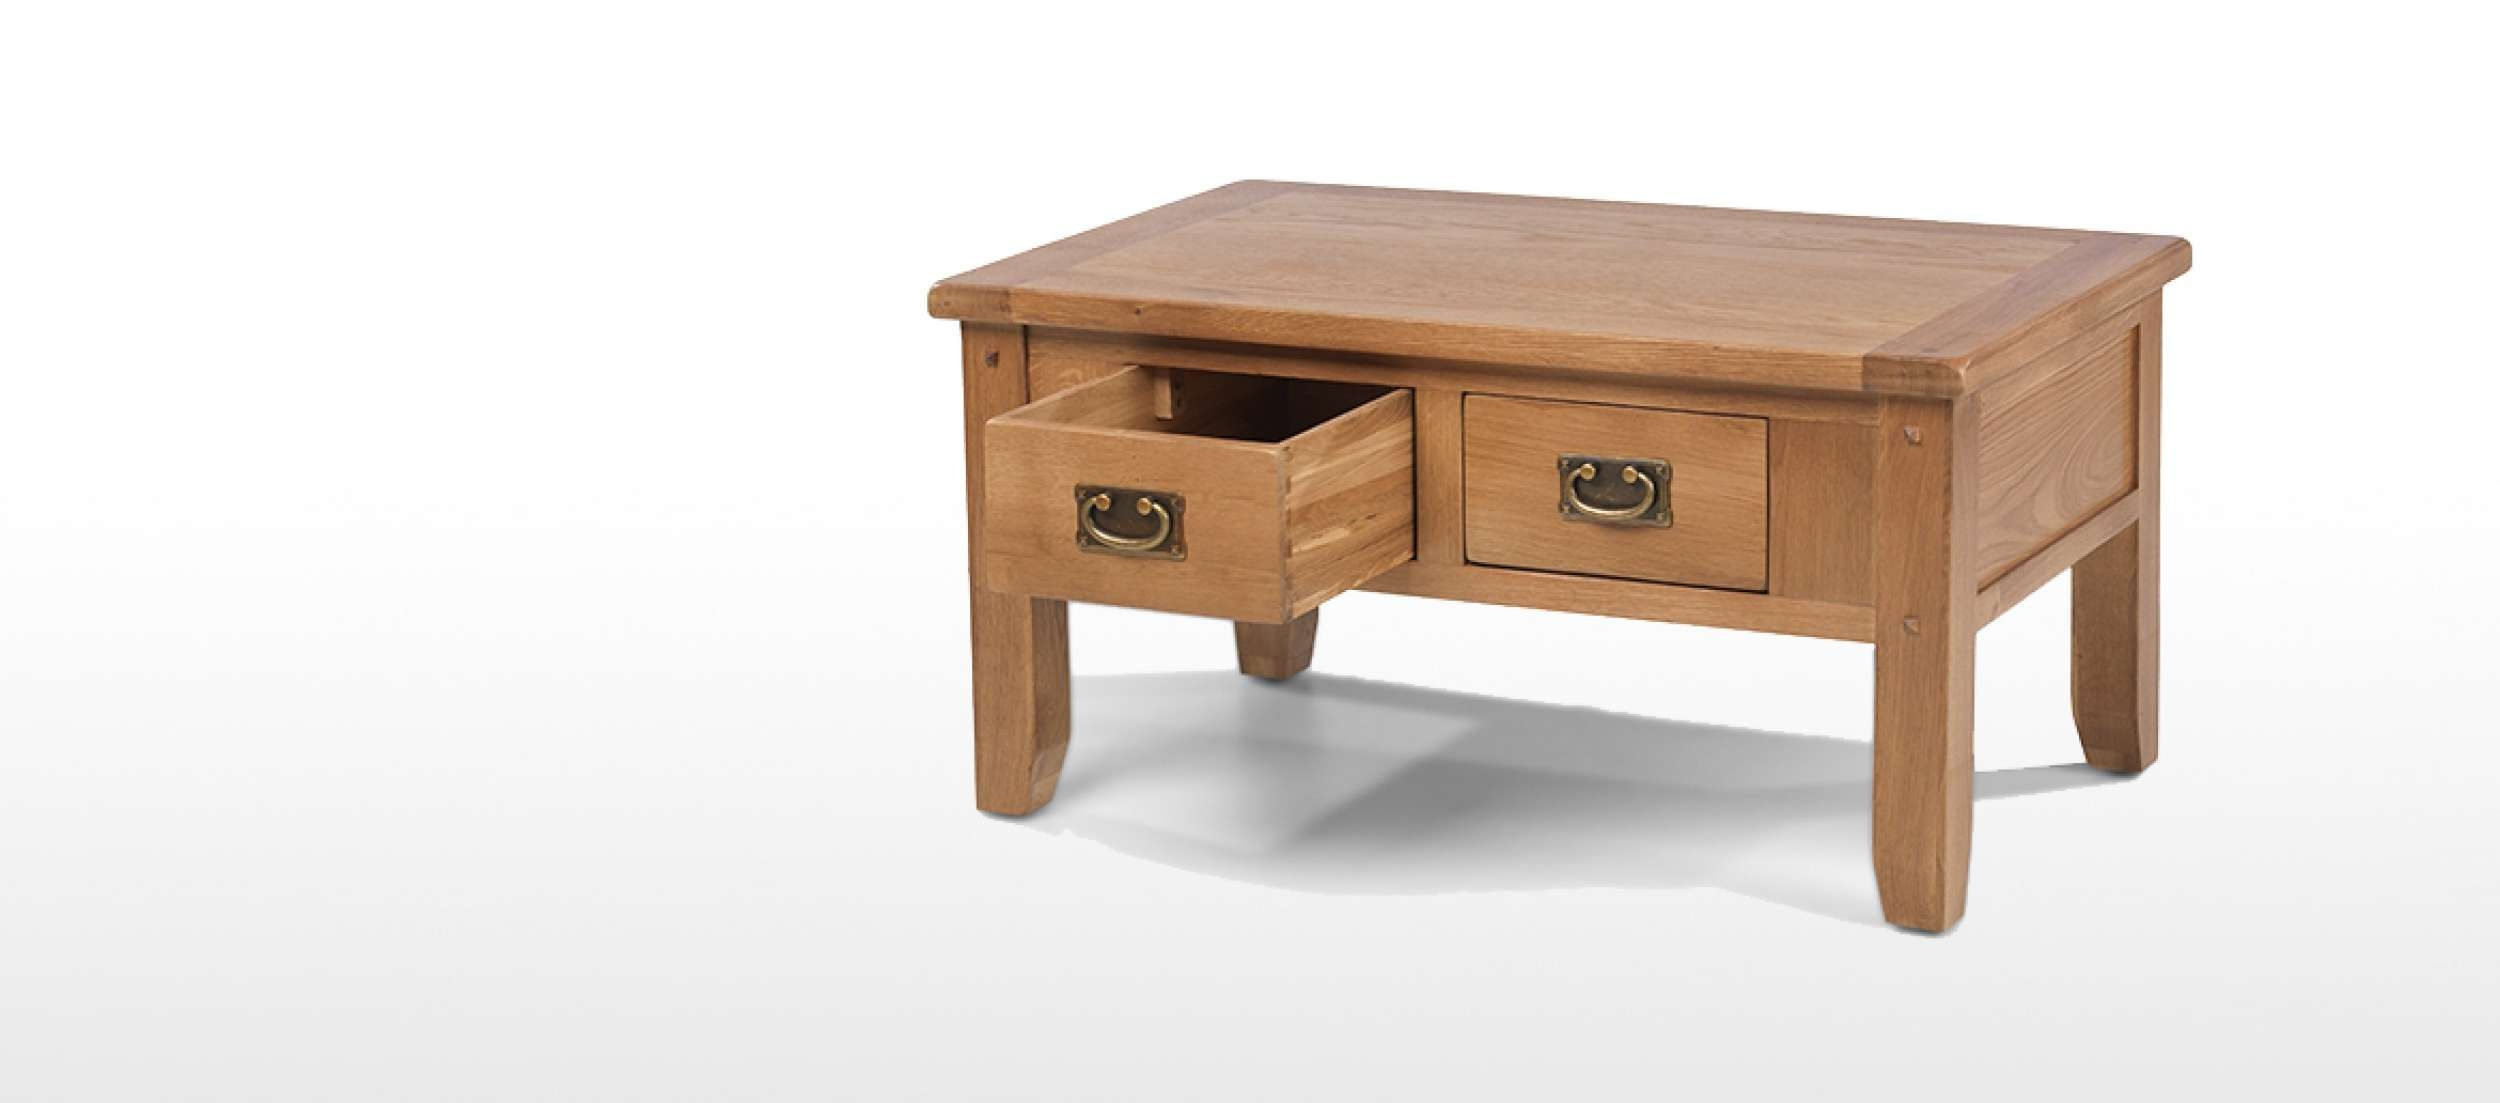 Coffee Tables : Splendid Good Wood Coffee Table Scandinavian Pertaining To Fashionable Small Oak Coffee Tables (View 5 of 20)